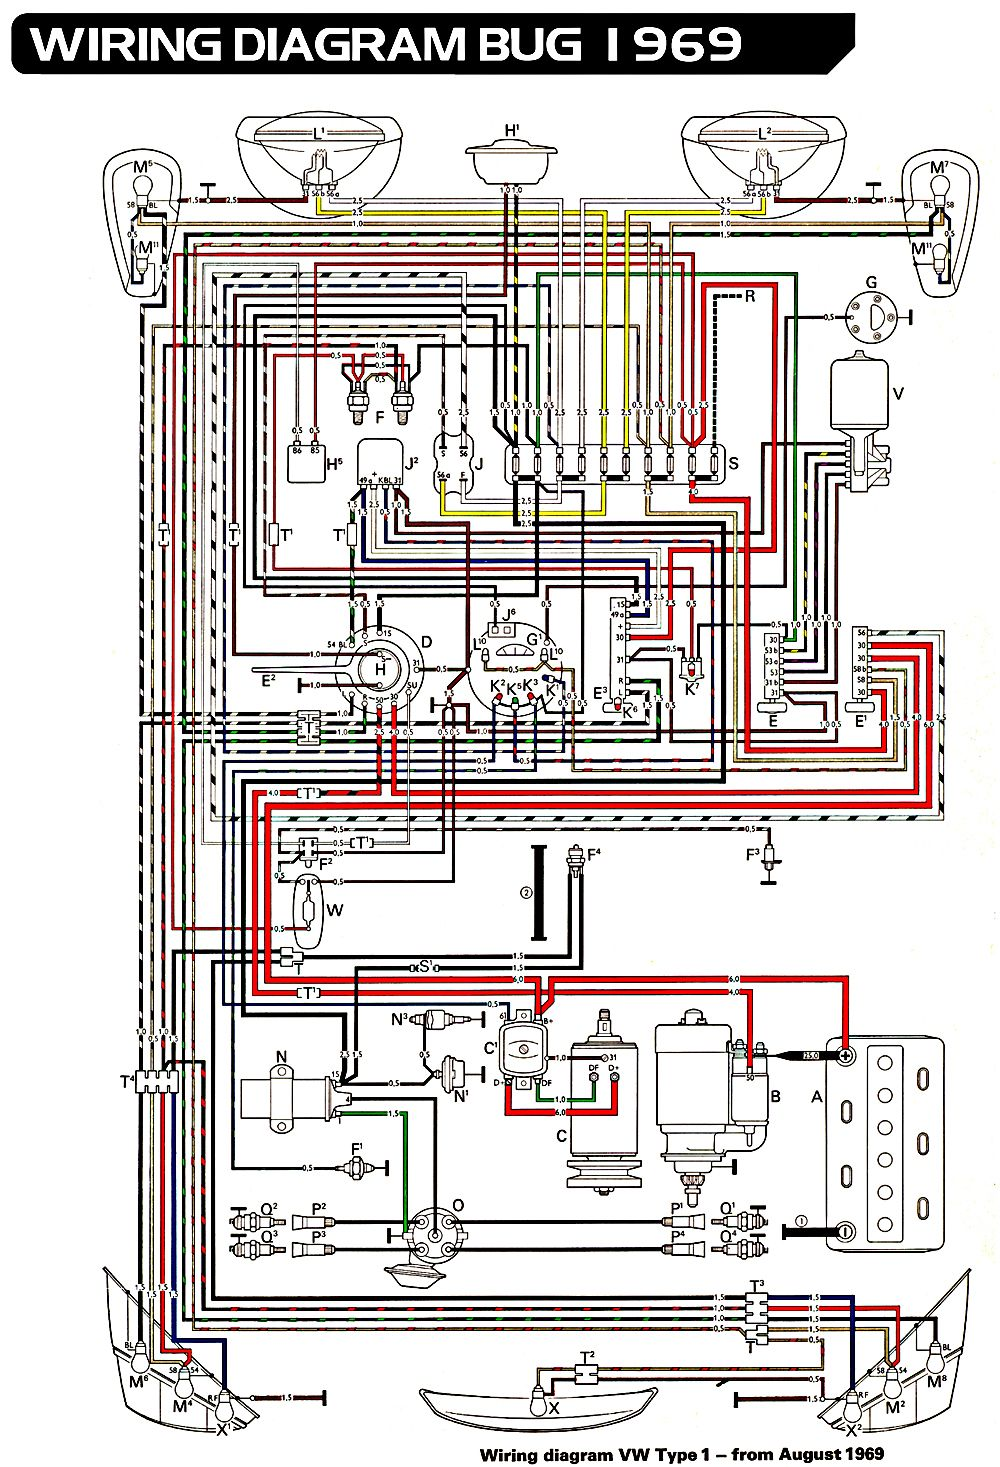 1971 super beetle wiring diagram fan online wiring diagram69 beetle engine wiring harness diagrams 4 7 spikeballclubkoeln de \\u2022vw wiring harness diagram 1